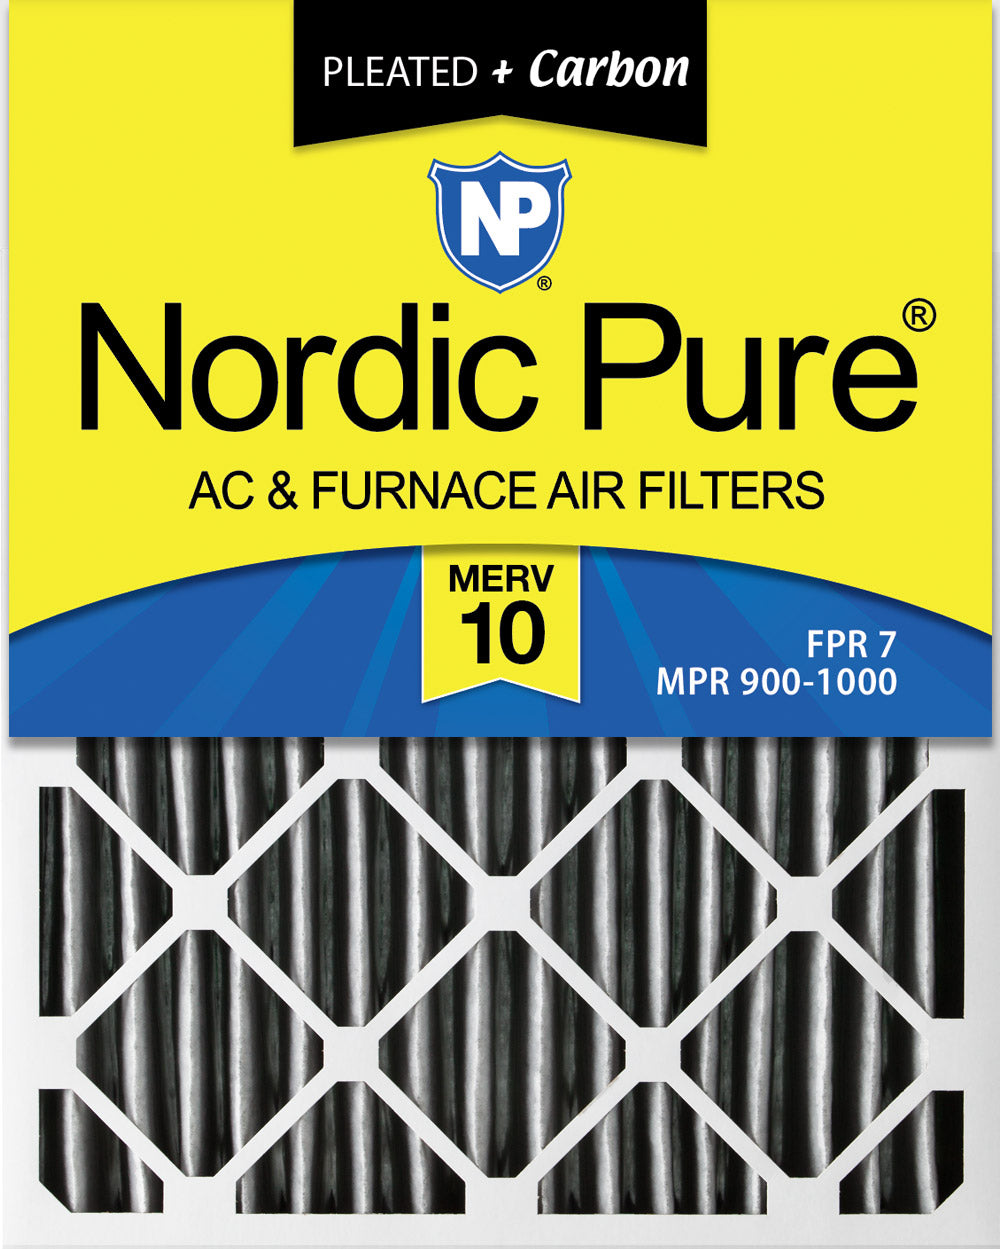 14x20x2 Furnace Air Filters MERV 10 Pleated Plus Carbon 3 Pack